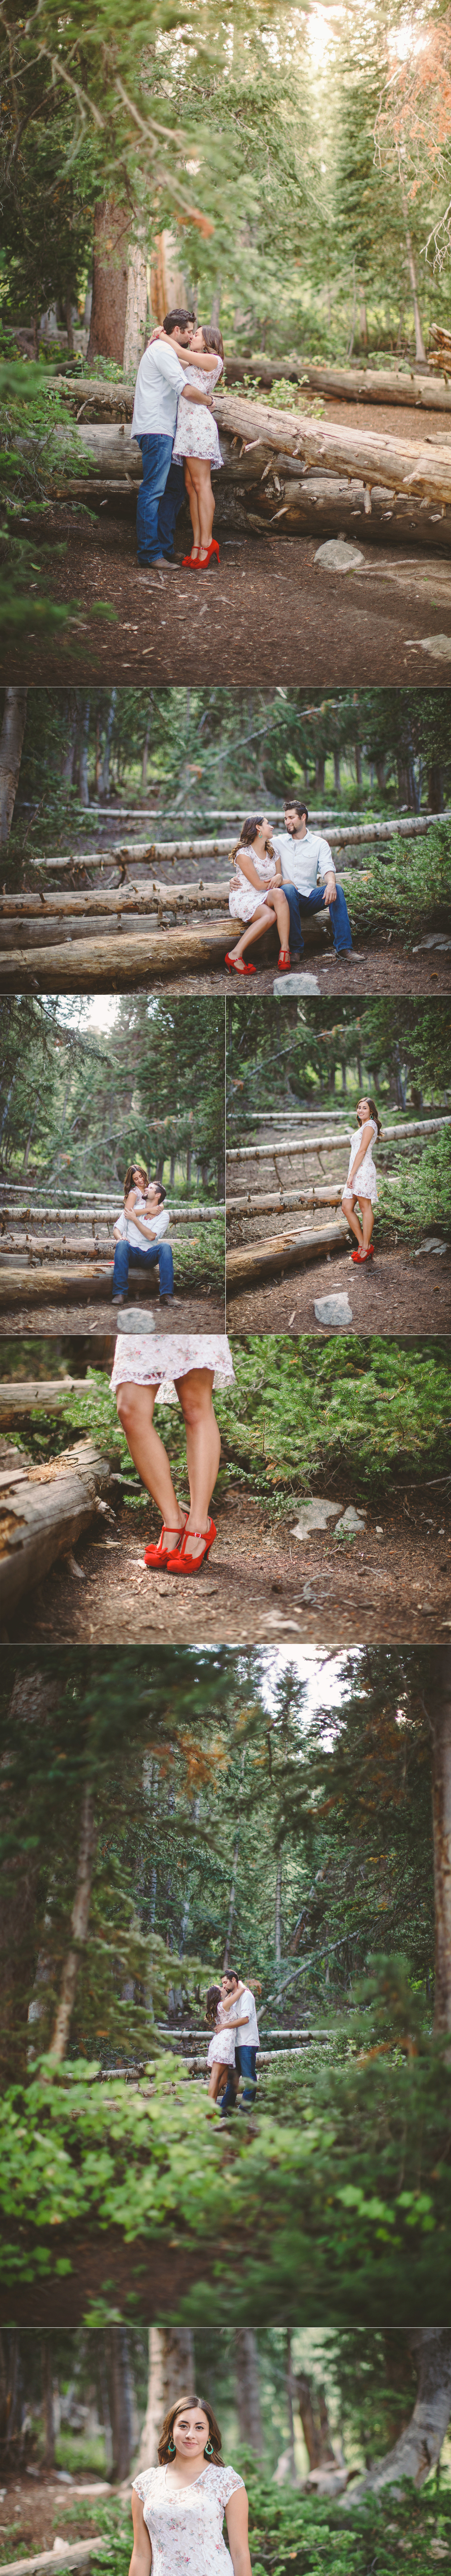 I just LOVE these photos! The sundress and red shoes amid the greenery is stunning